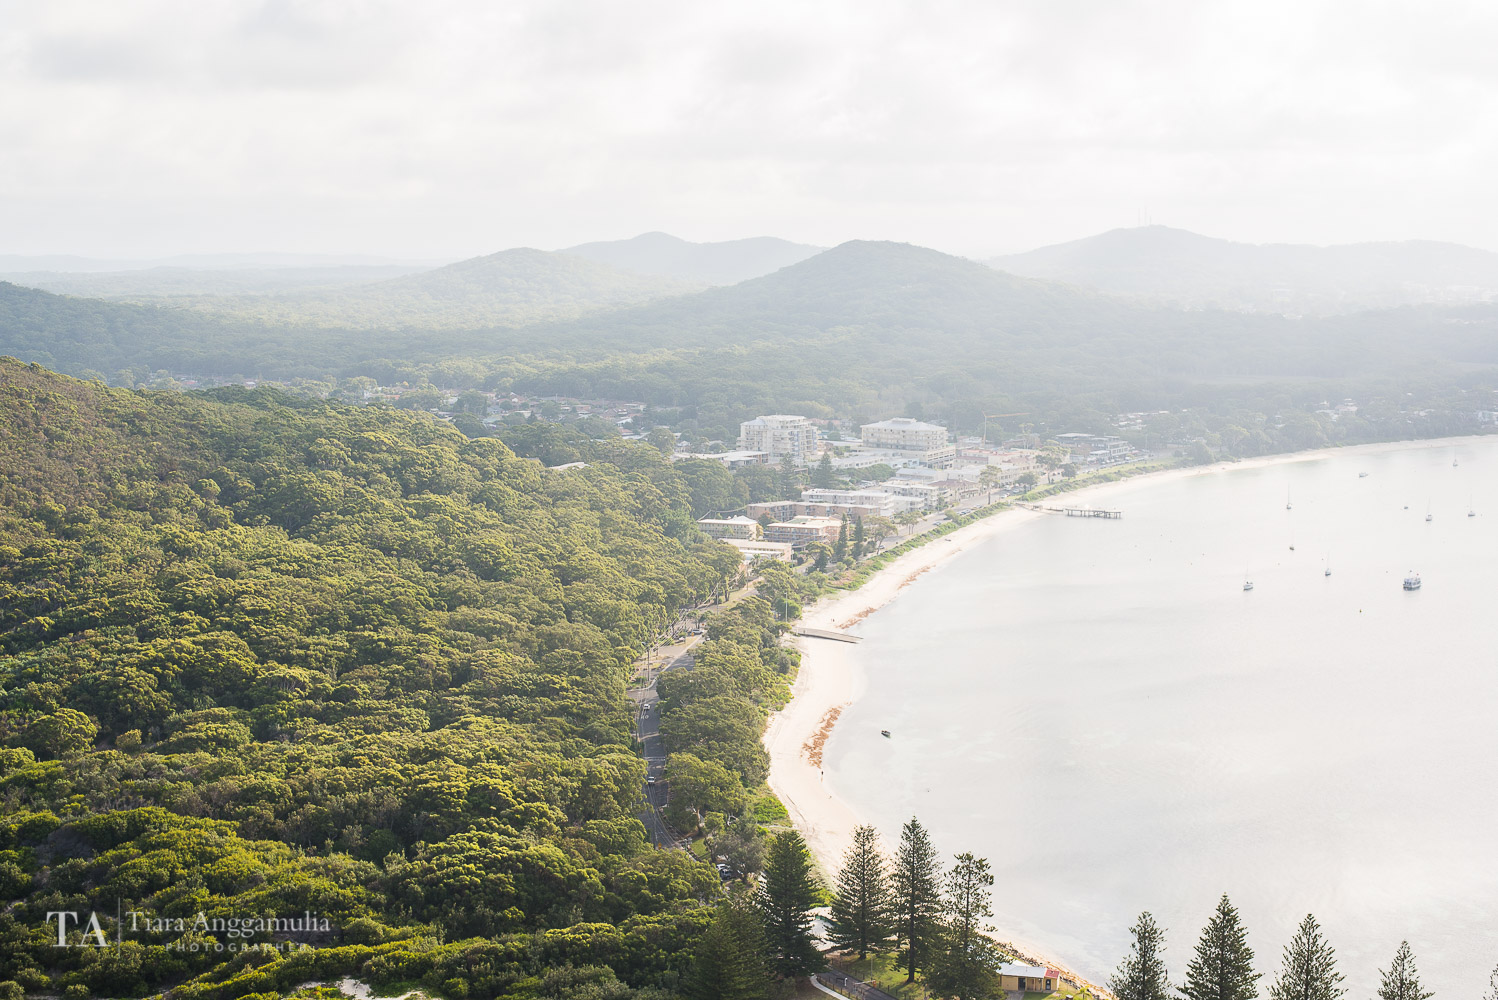 A view of Shoal Bay from the top of Tomaree Head Summit.